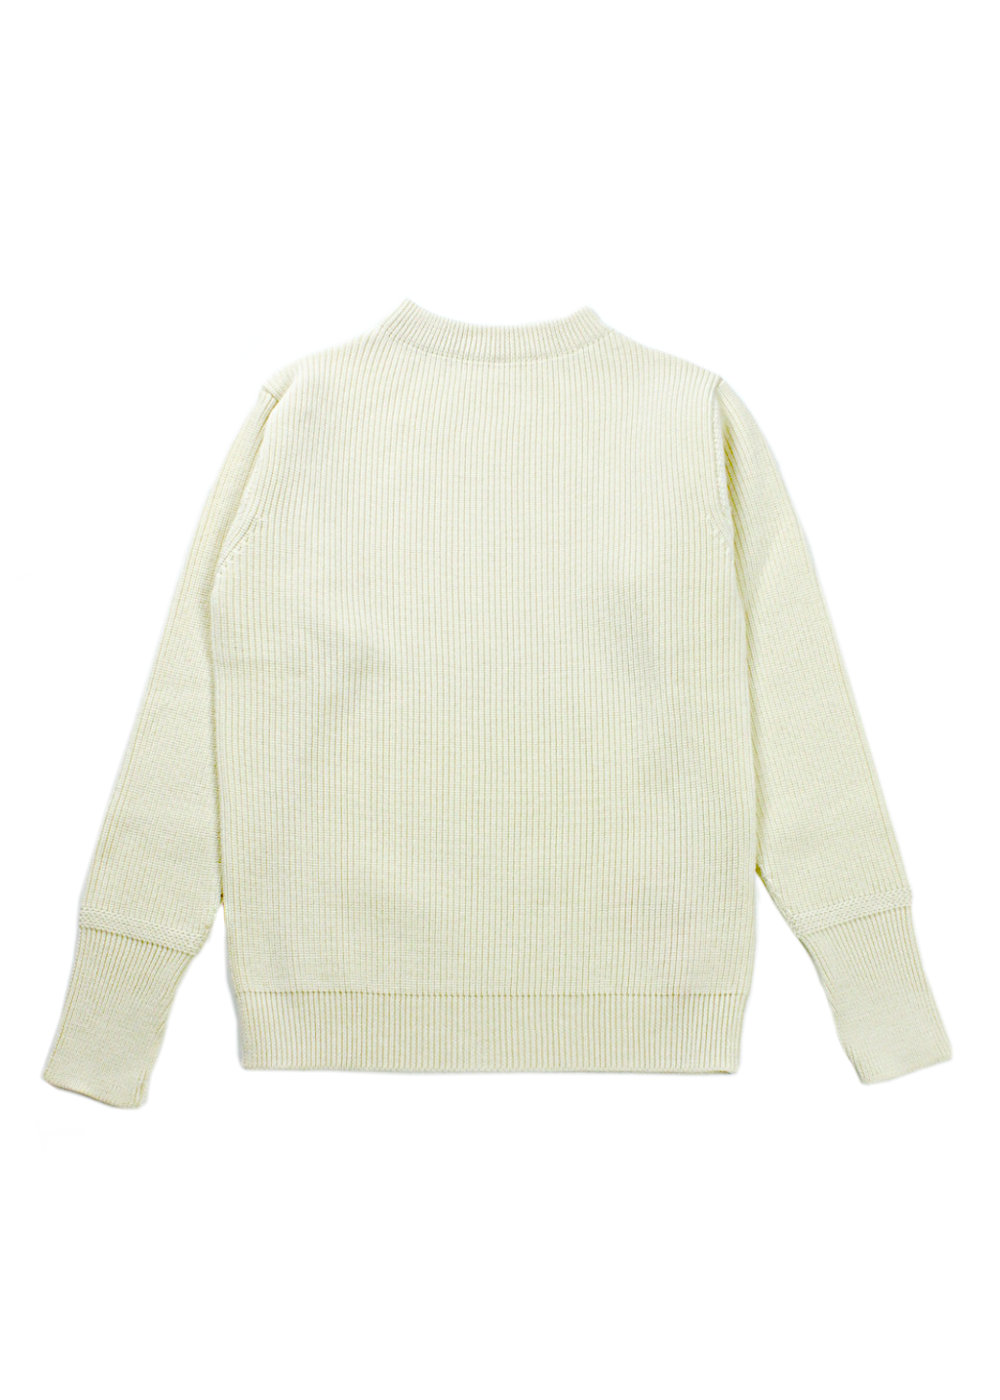 Andersen-Andersen-Crew-Neck-Off-White-01